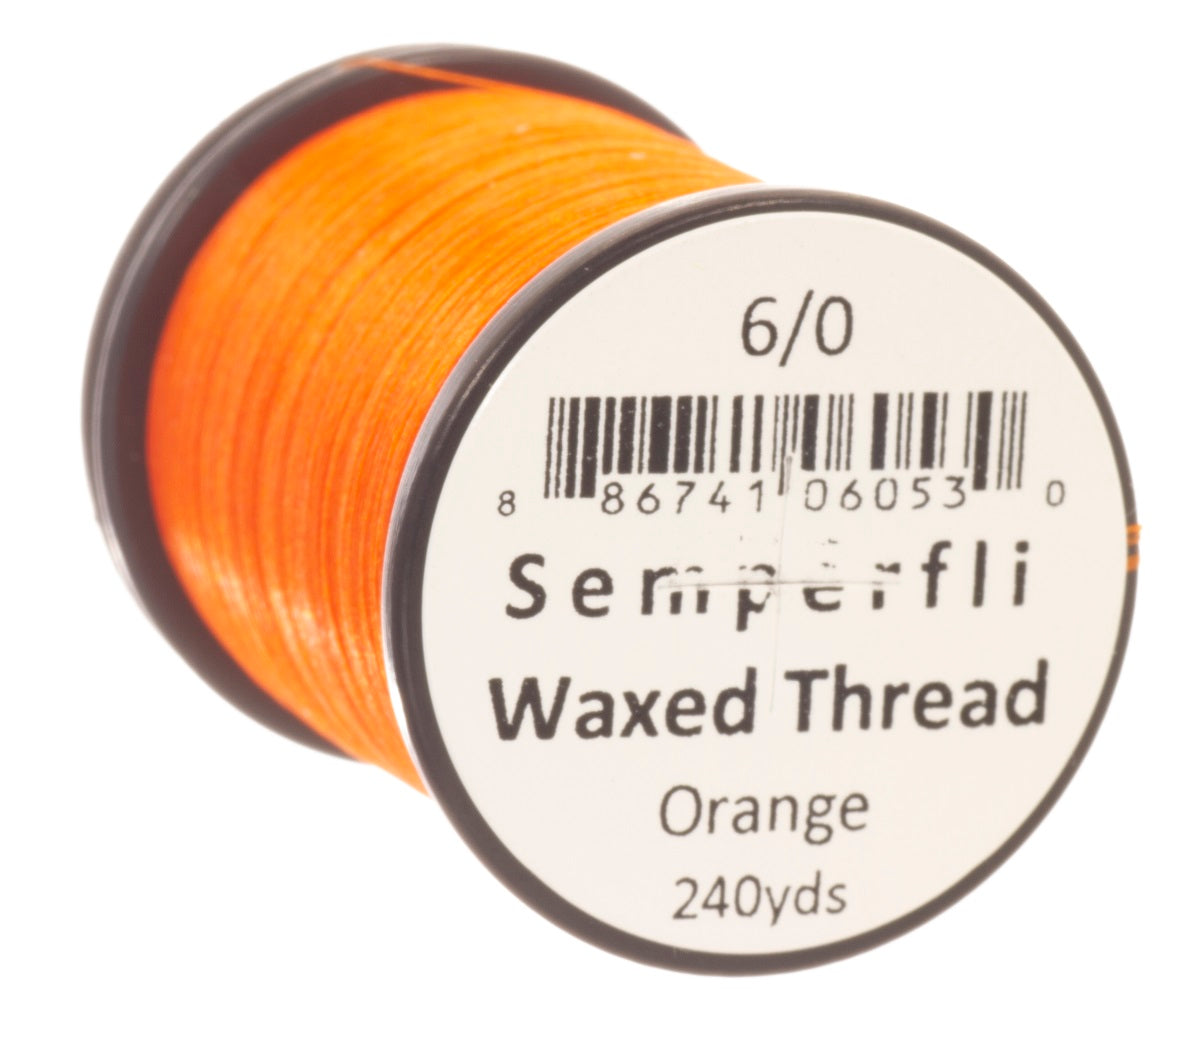 Semperfli Classic Waxed 6/0 thread